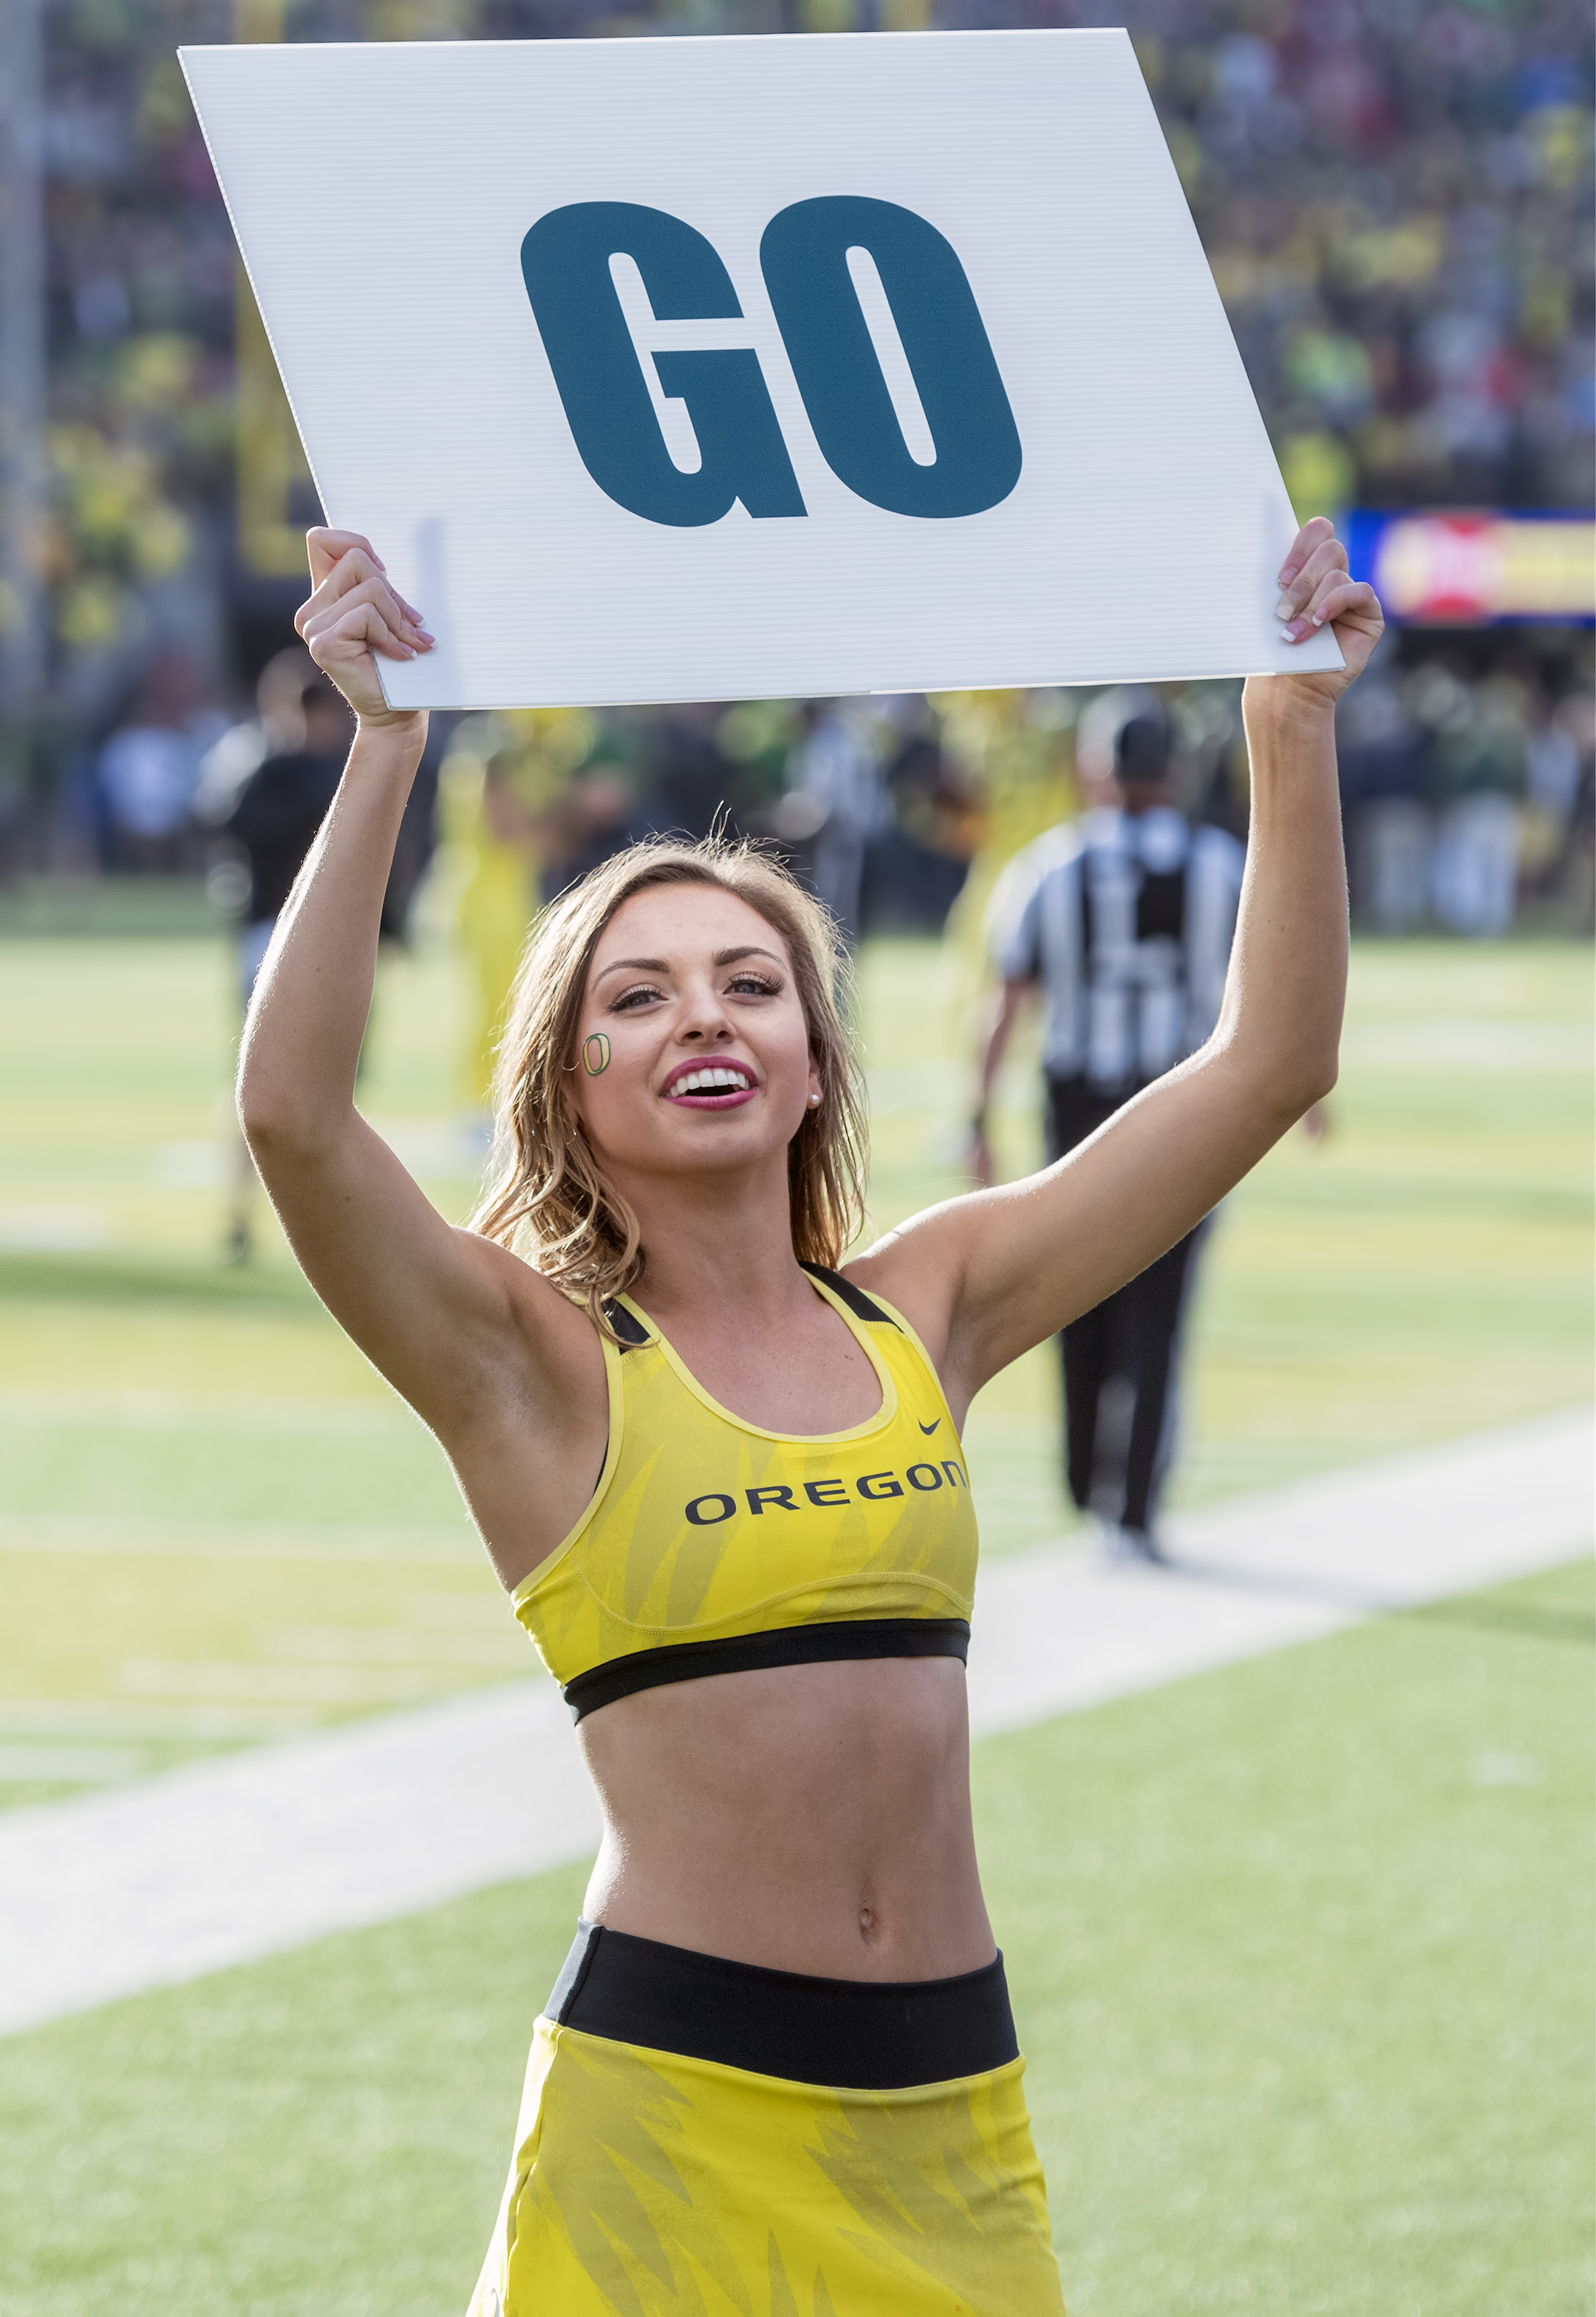 university of oregon ducks cheerleaders